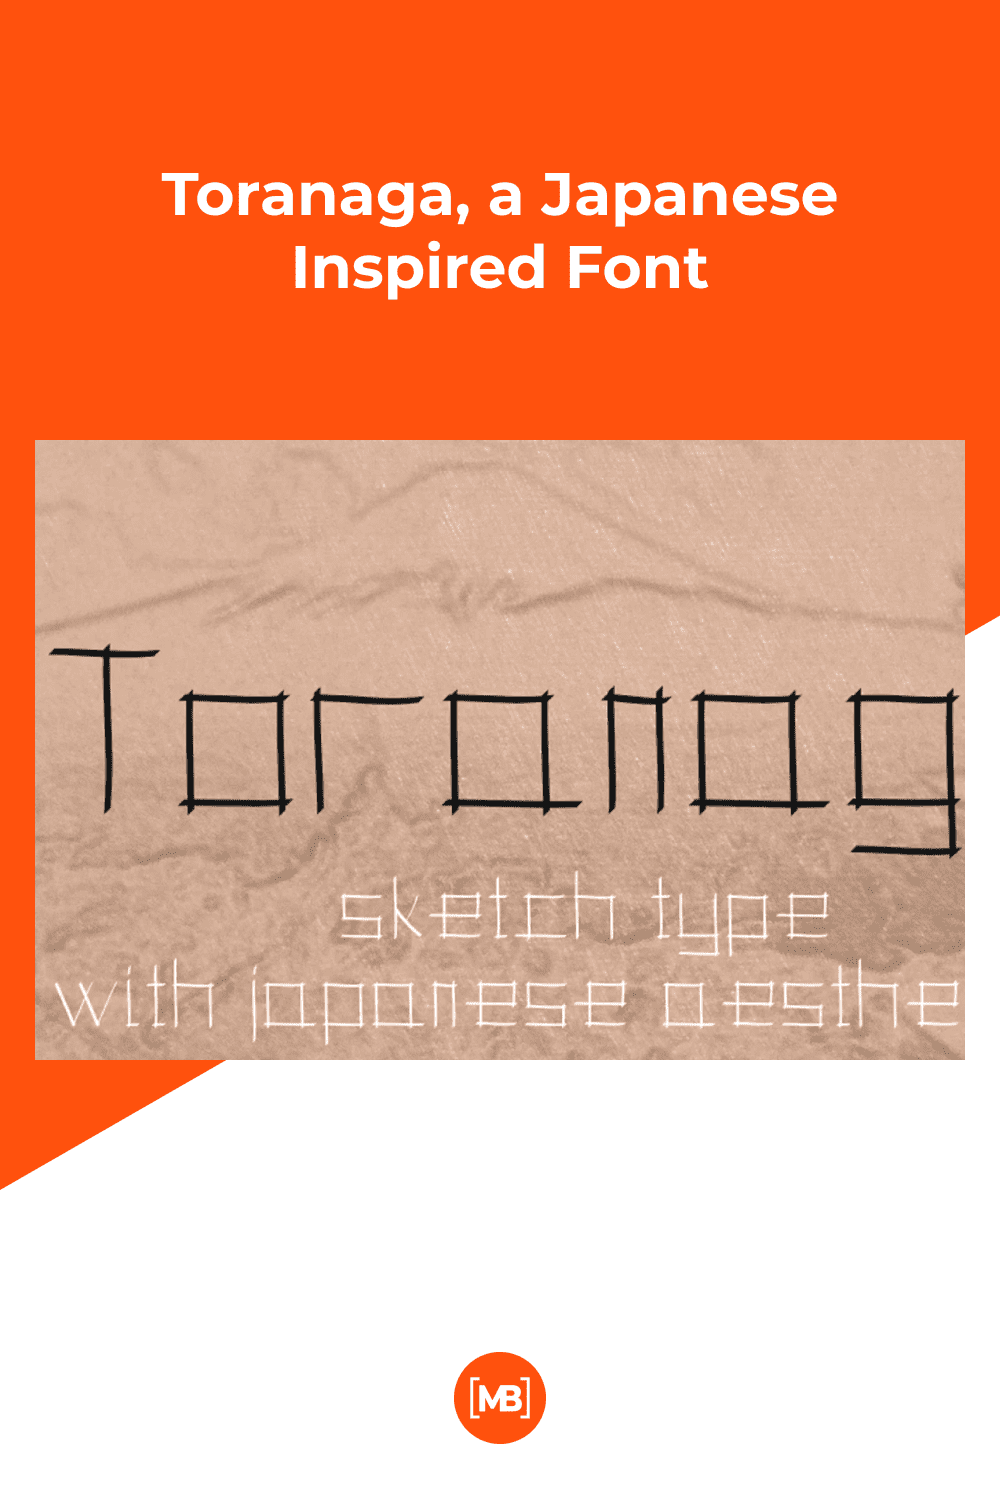 Toranaga font is a sketch typeface made out of sticks inspired by old Japanese writings.